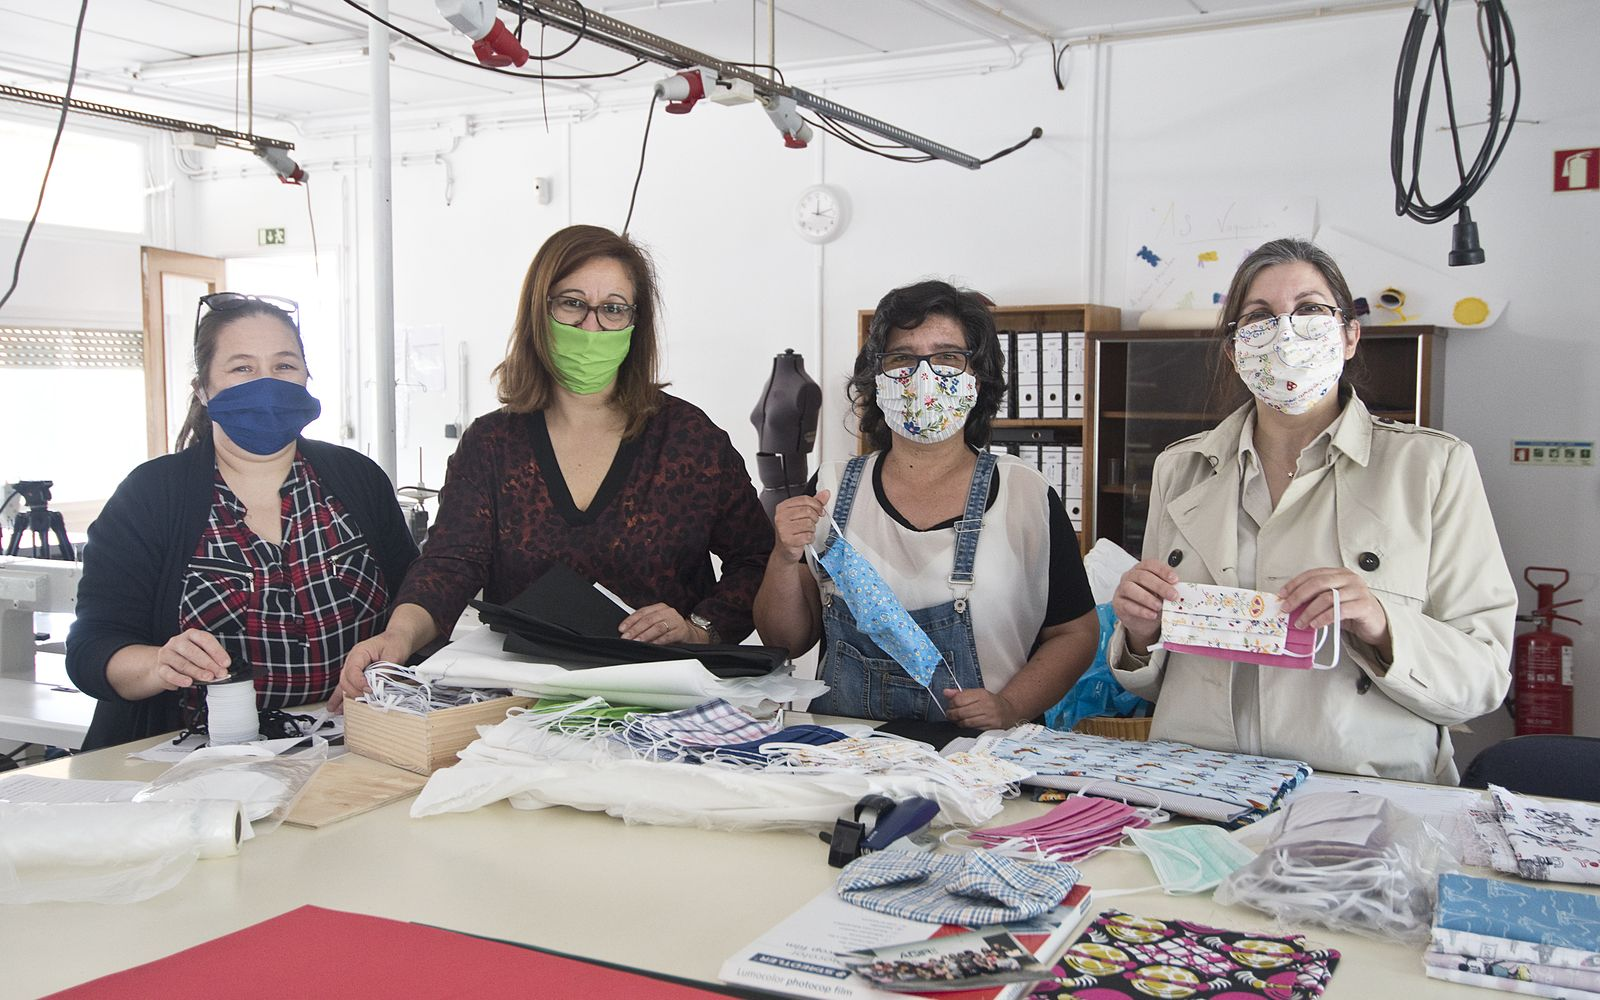 Sandra, Marina, Paula and Zélia all started sewing masks from their homes and distributing them in Lisbon